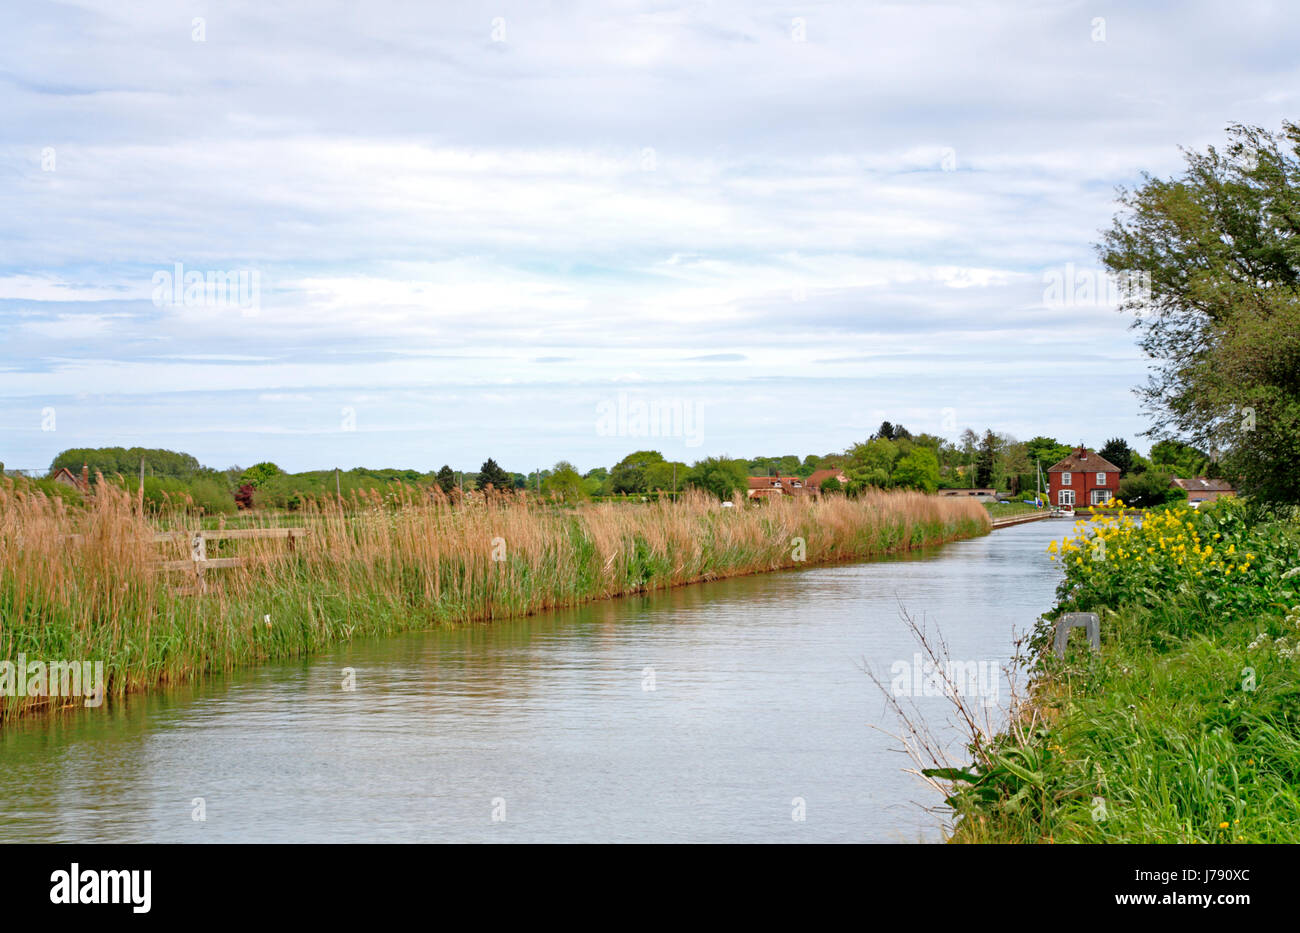 A view of Somerton Dike leading to West Somerton Staithe on the Norfolk Broads, England, United Kingdom. - Stock Image